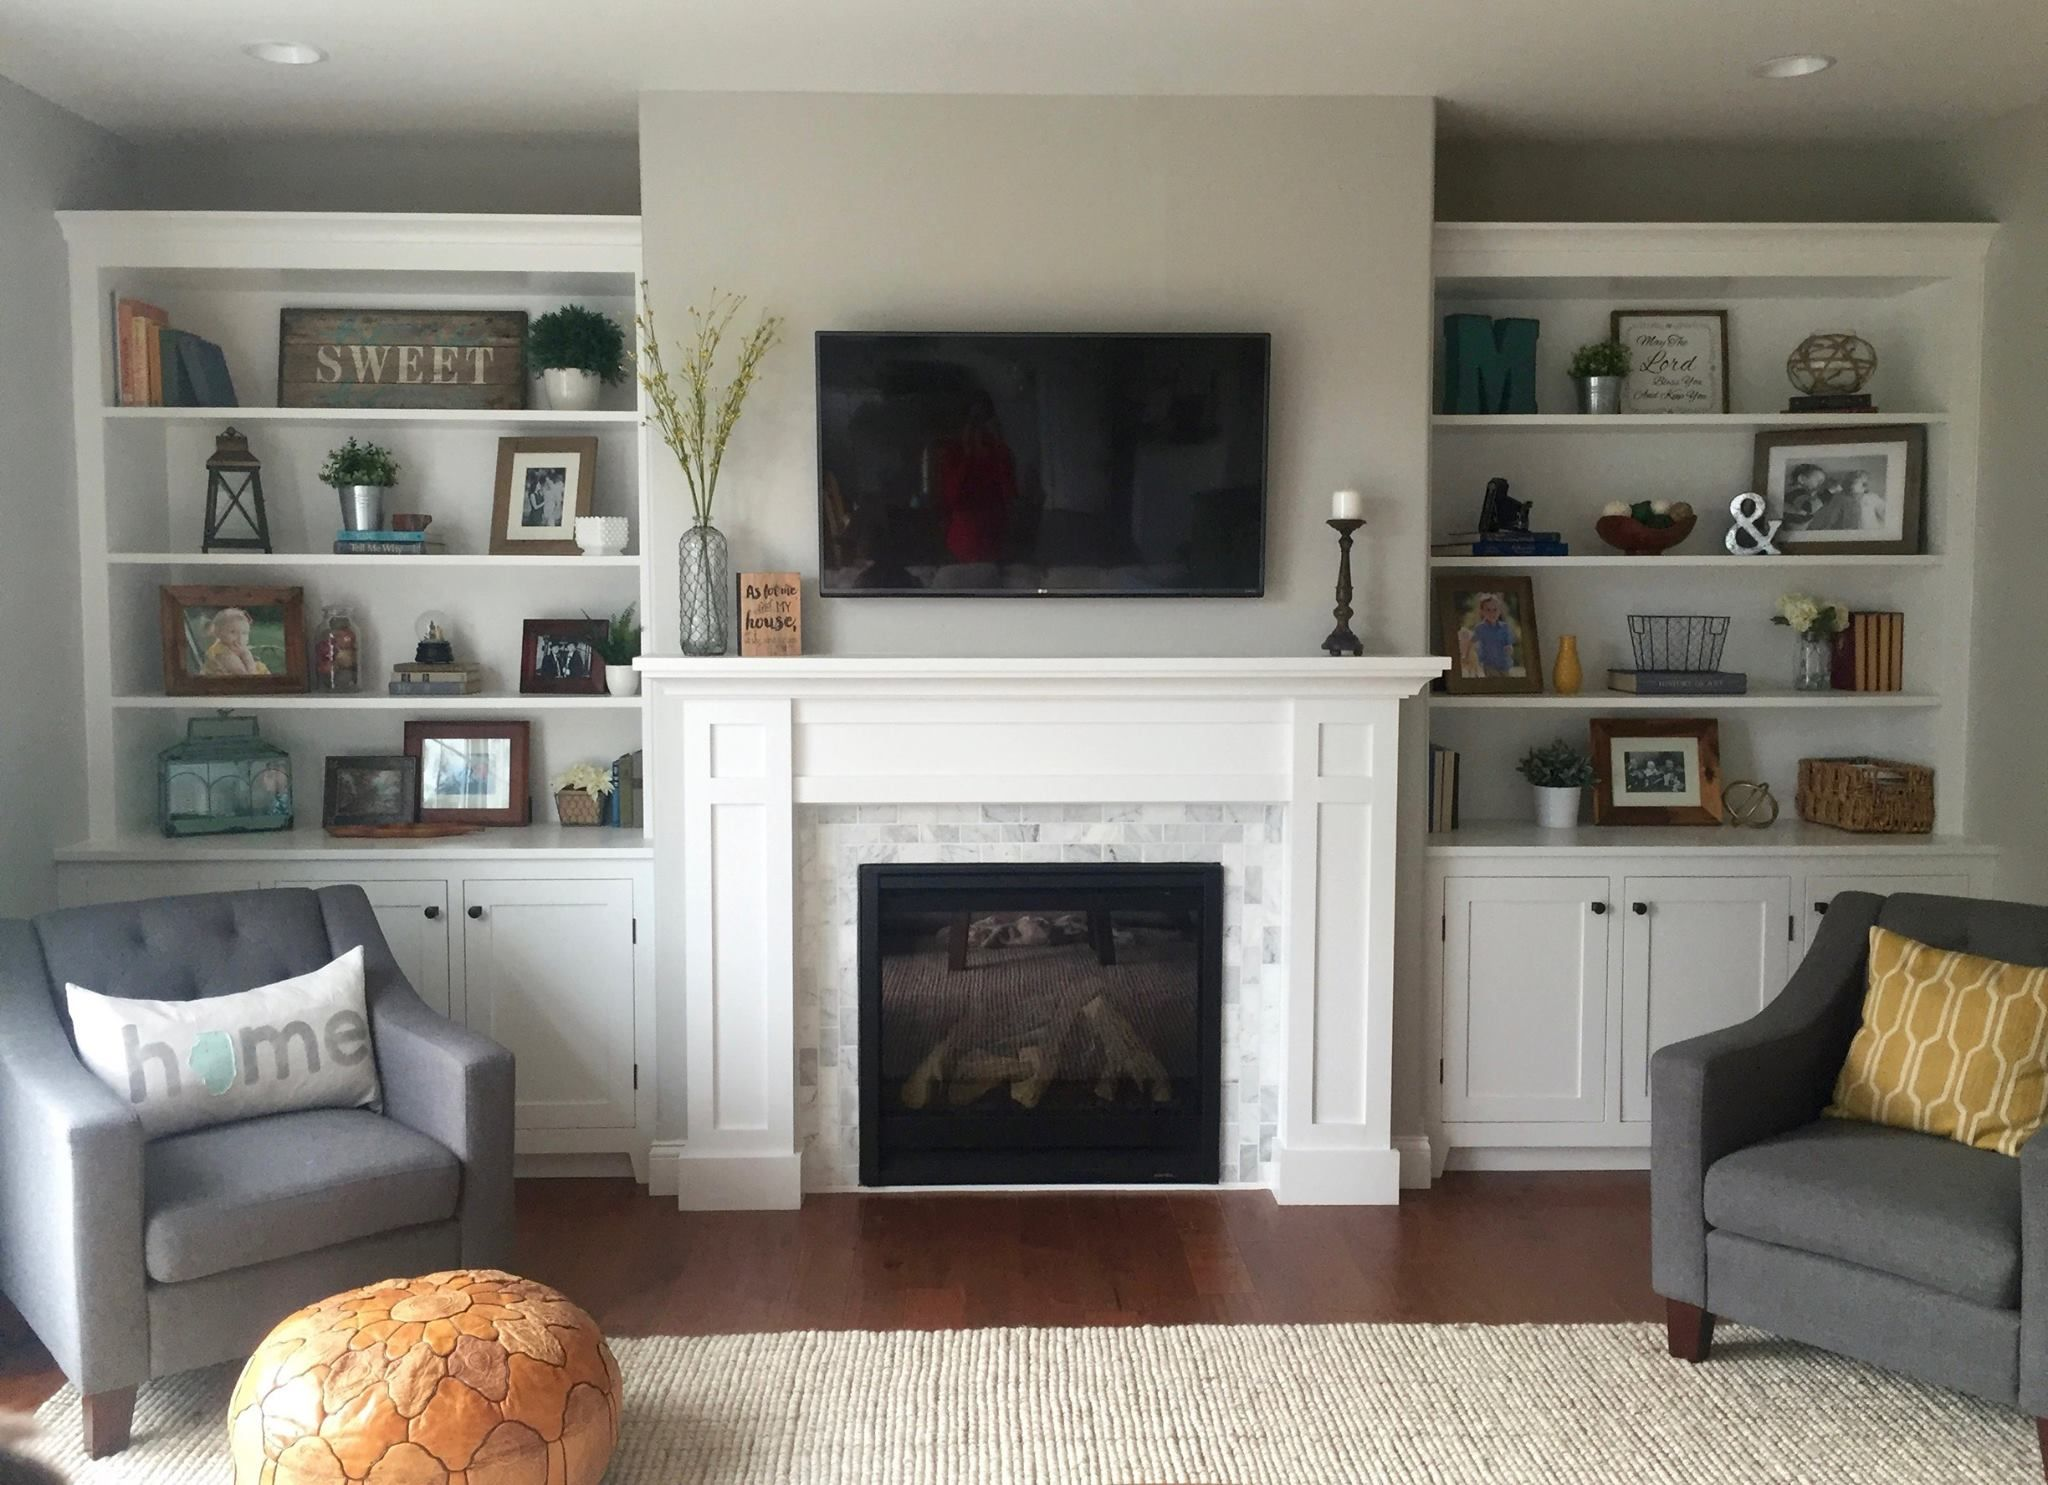 wood shelves stone mantels floor plus fireplace for ideas white with family and design awesome decorating electric mantel room wooden